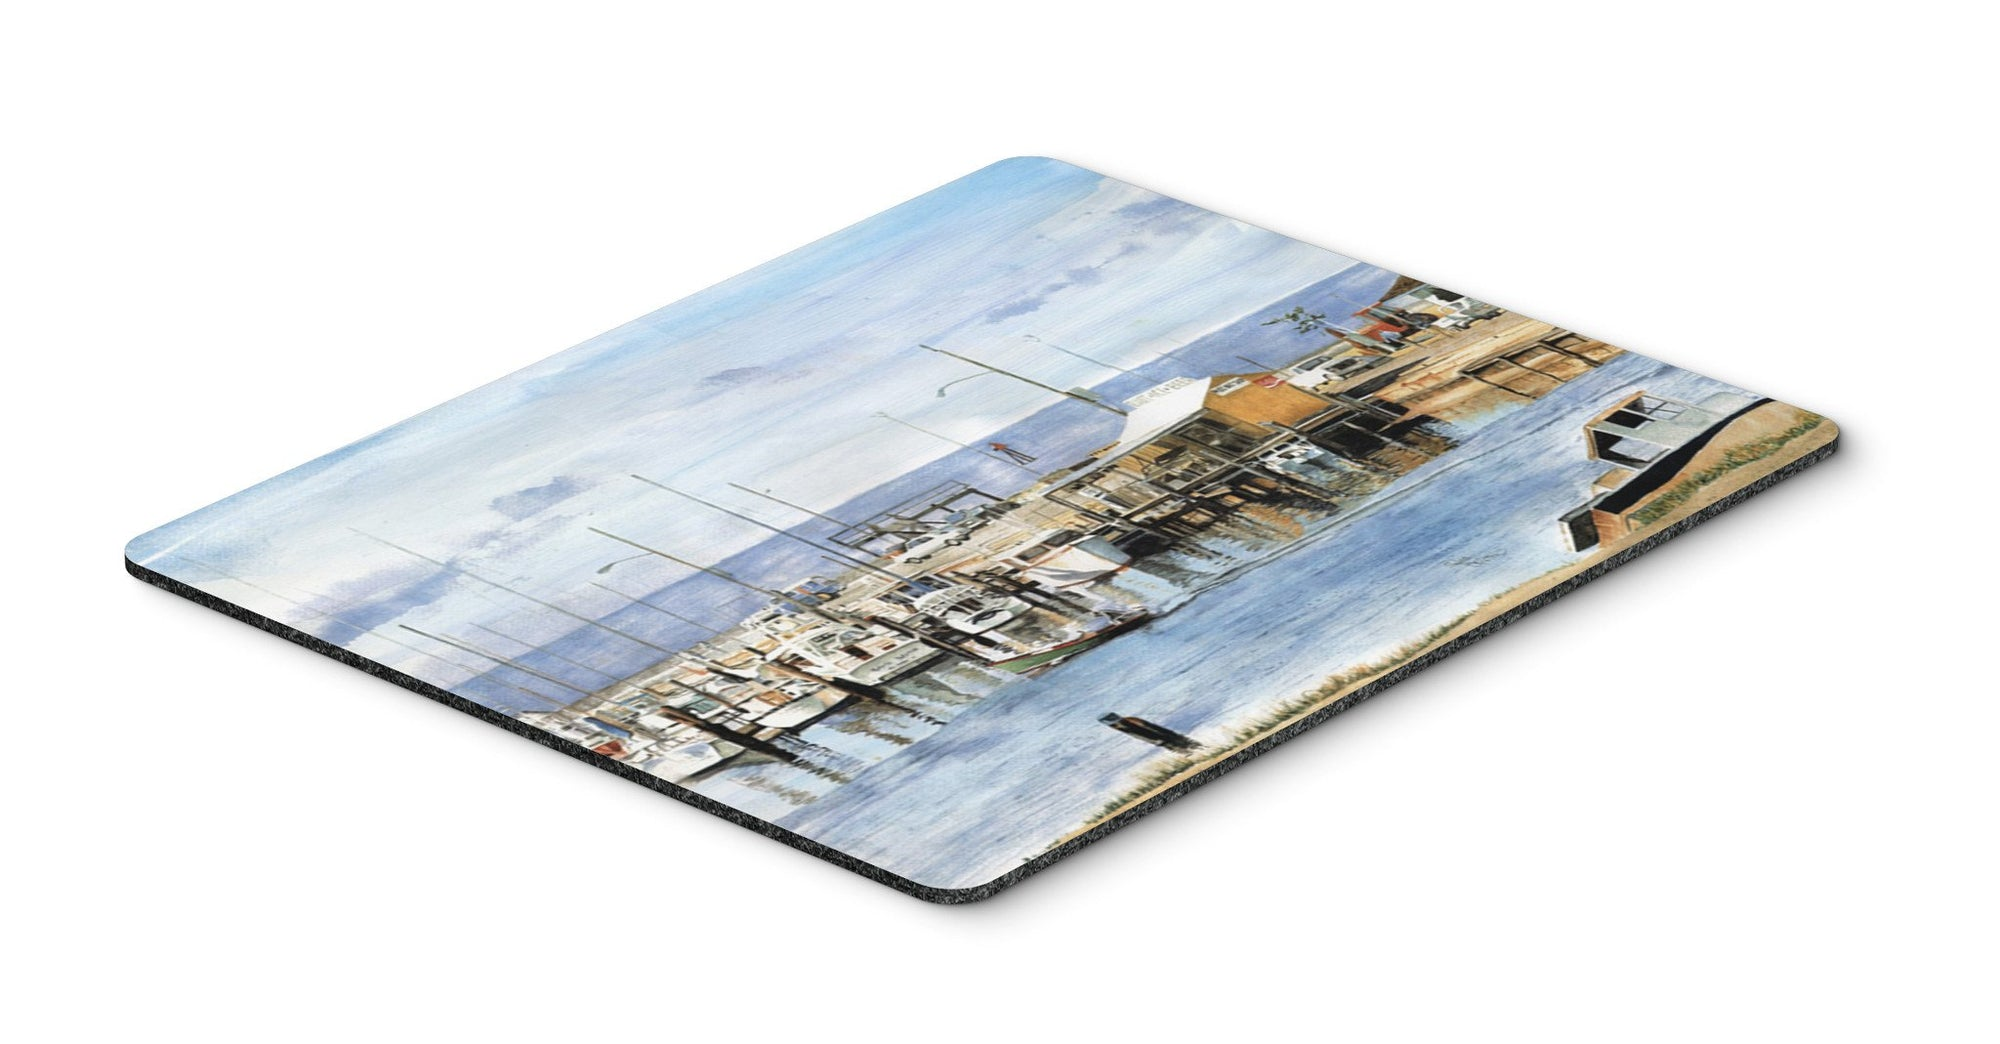 The Pass Bait Shop Mouse pad, hot pad, or trivet by Caroline's Treasures